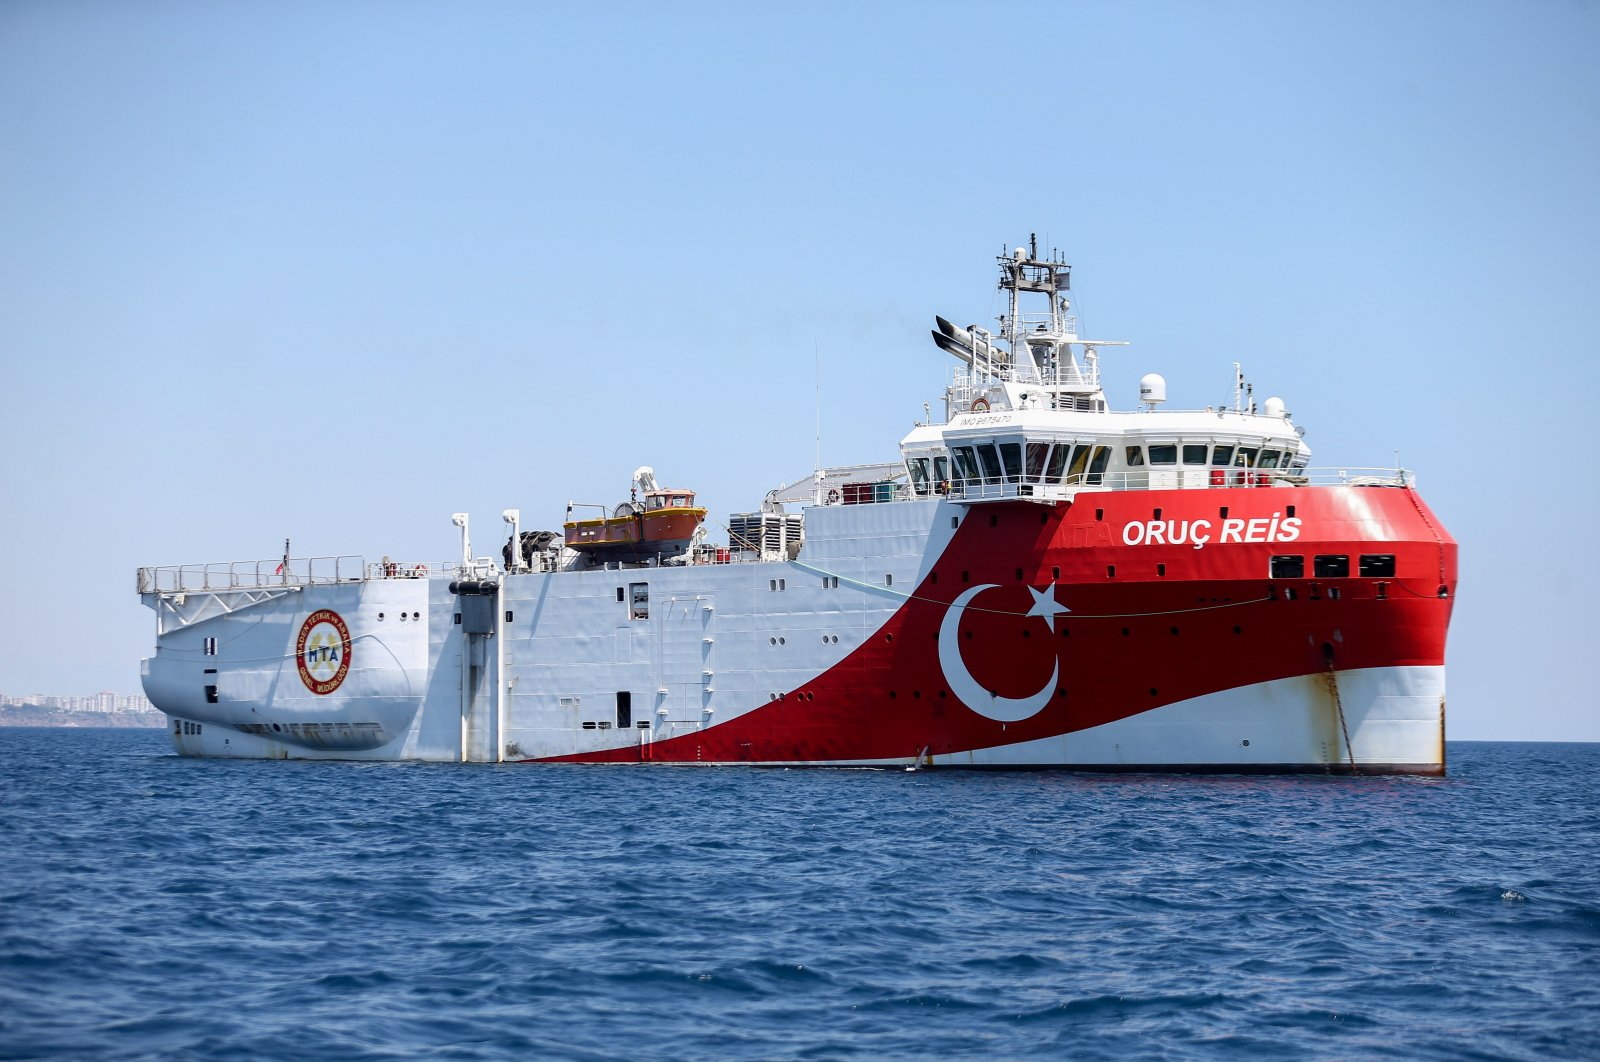 Turkish seismic research vessel Oruç Reis conducts gas exploration activities in the Eastern Mediterranean, July 24, 2020. (AA Photo)